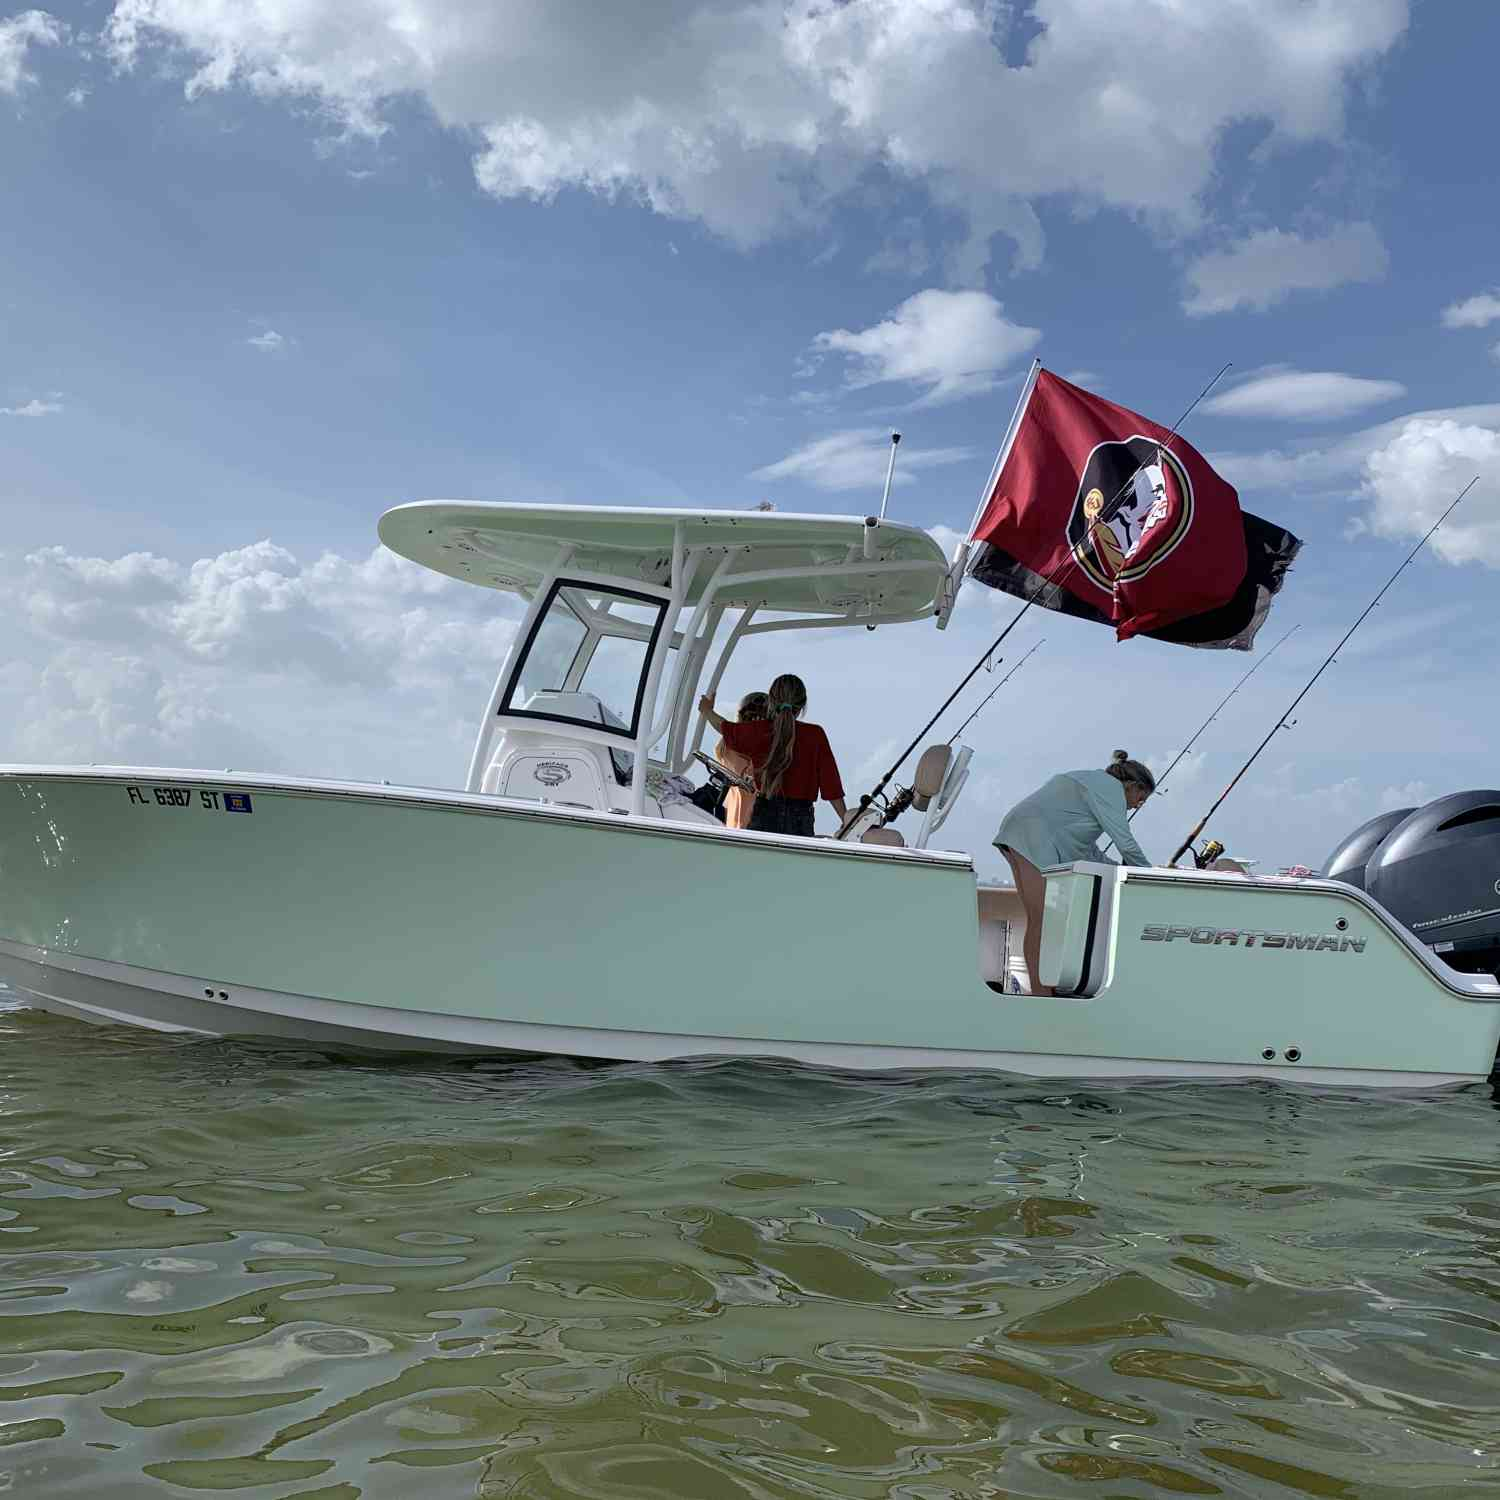 Title: The Kavanaugh's Sportsman - On board their Sportsman Open 252 Center Console - Location: Tampa, Florida. Participating in the Photo Contest #SportsmanMarch2021